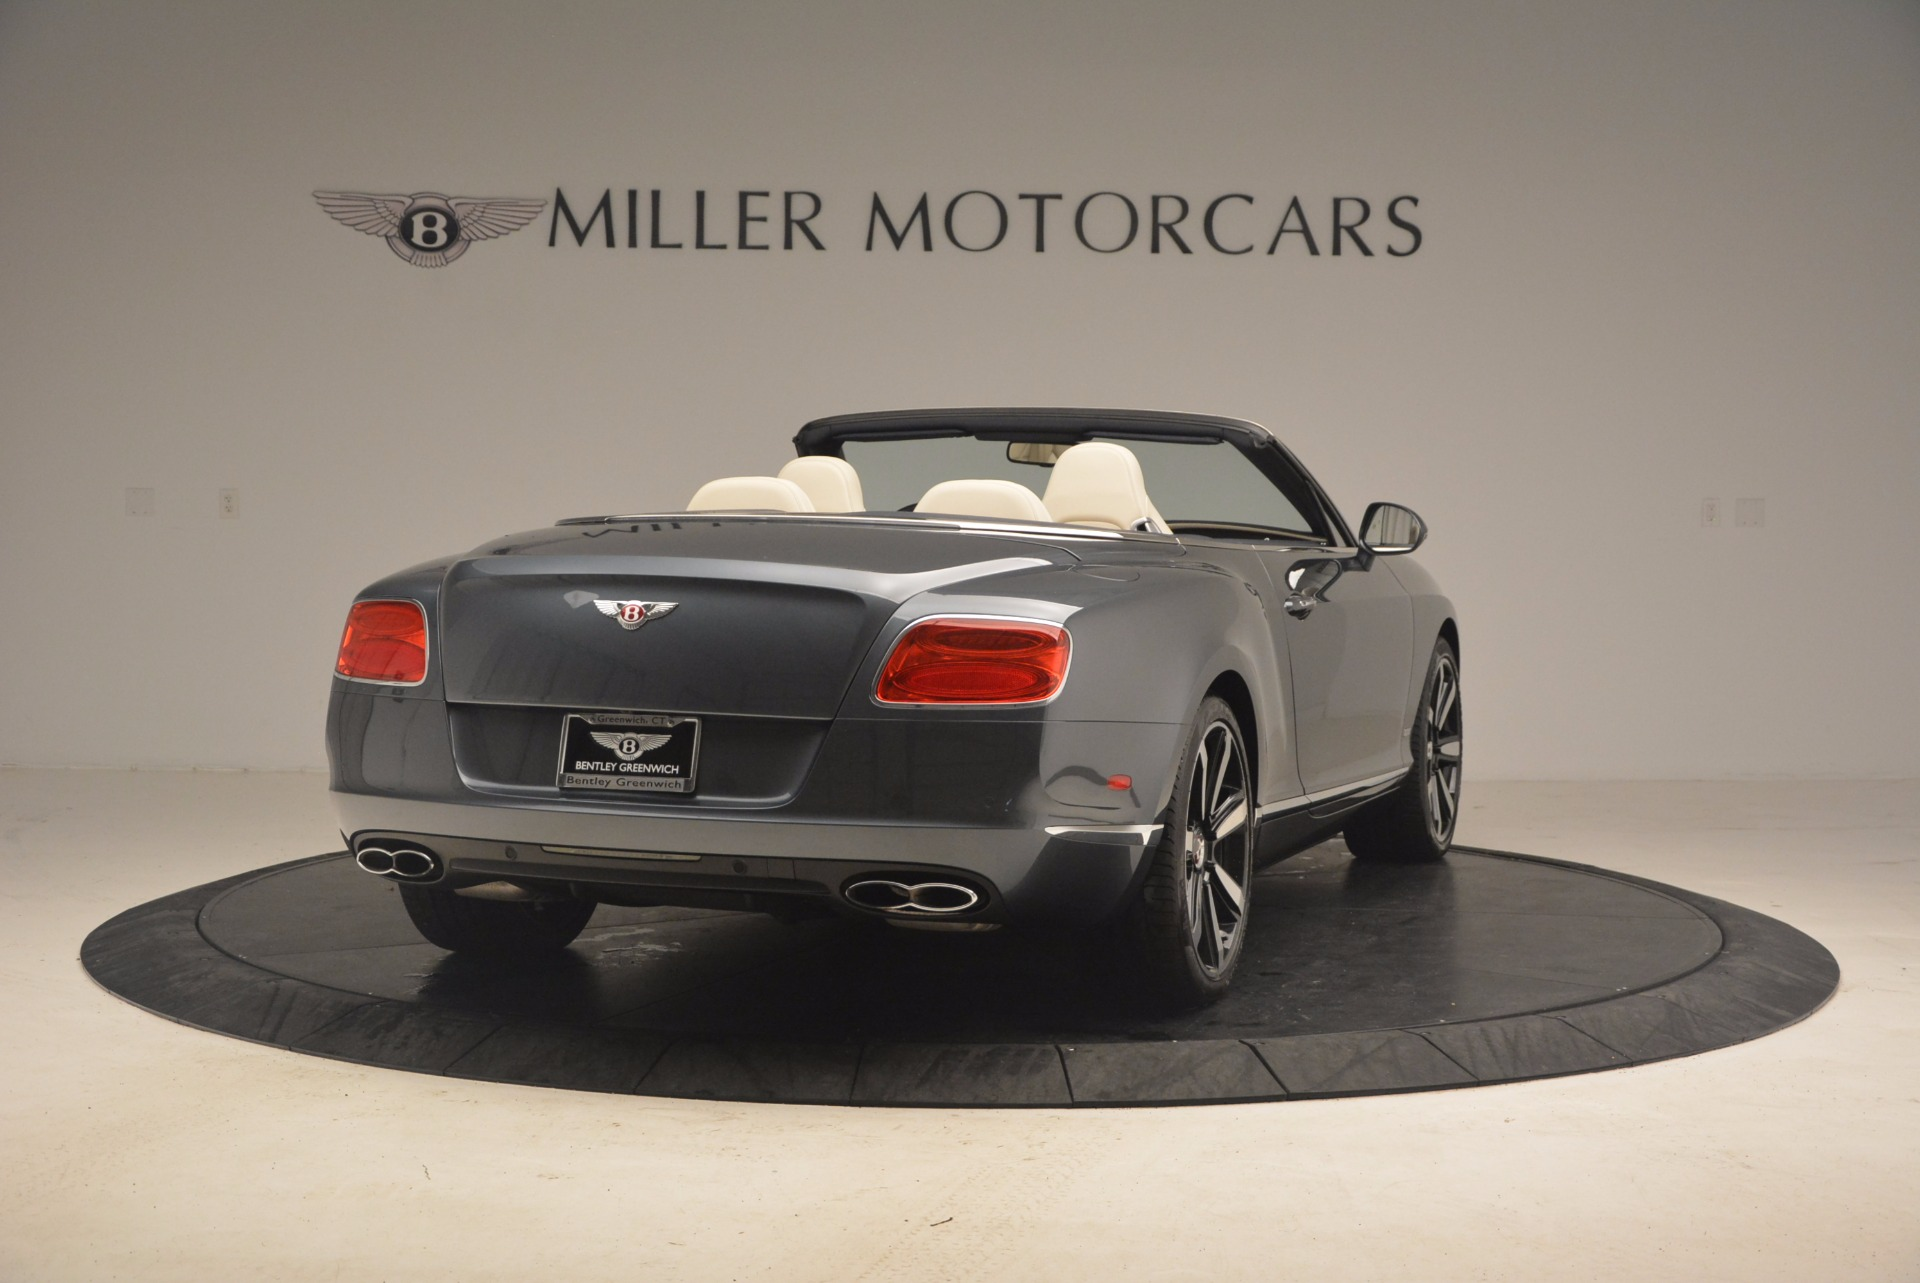 Used 2013 Bentley Continental GT V8 Le Mans Edition, 1 of 48 For Sale In Westport, CT 1288_p7